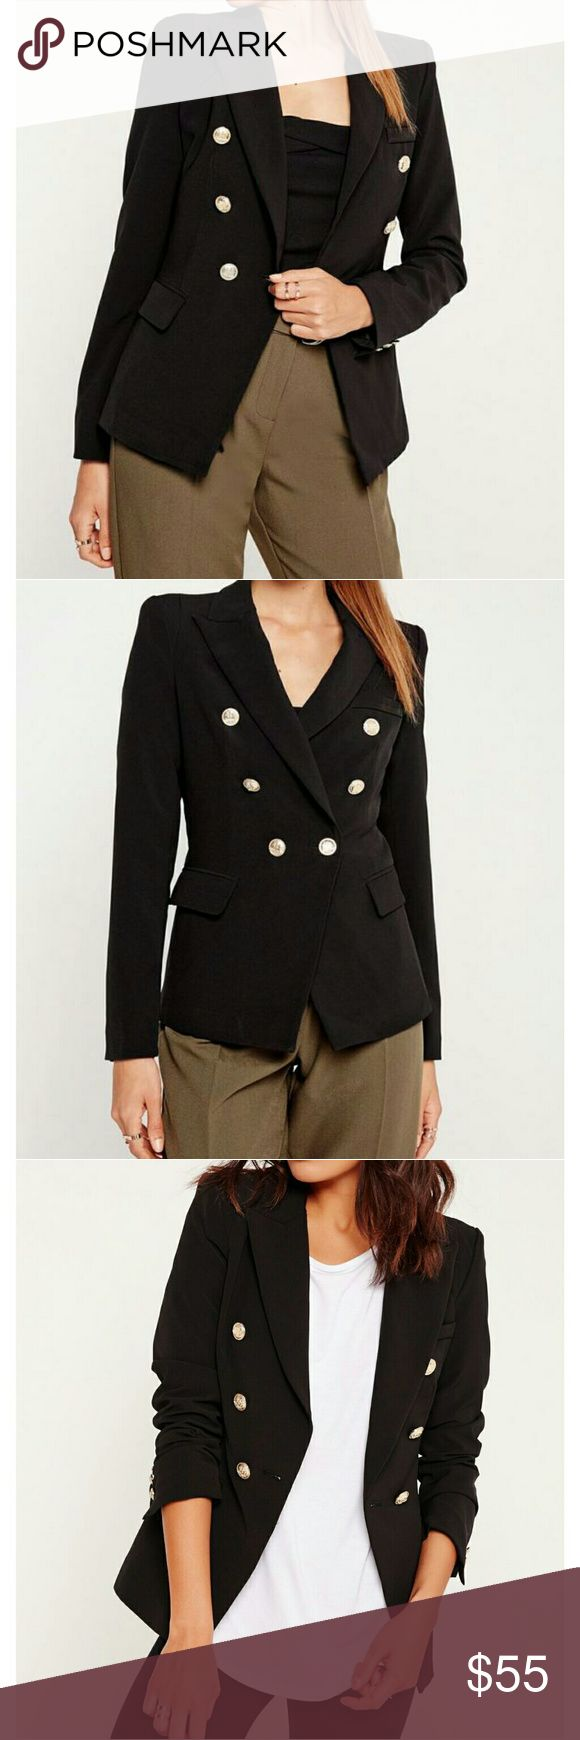 Missguided black military blazer Brand new Missguided Jackets & Coats Blazers